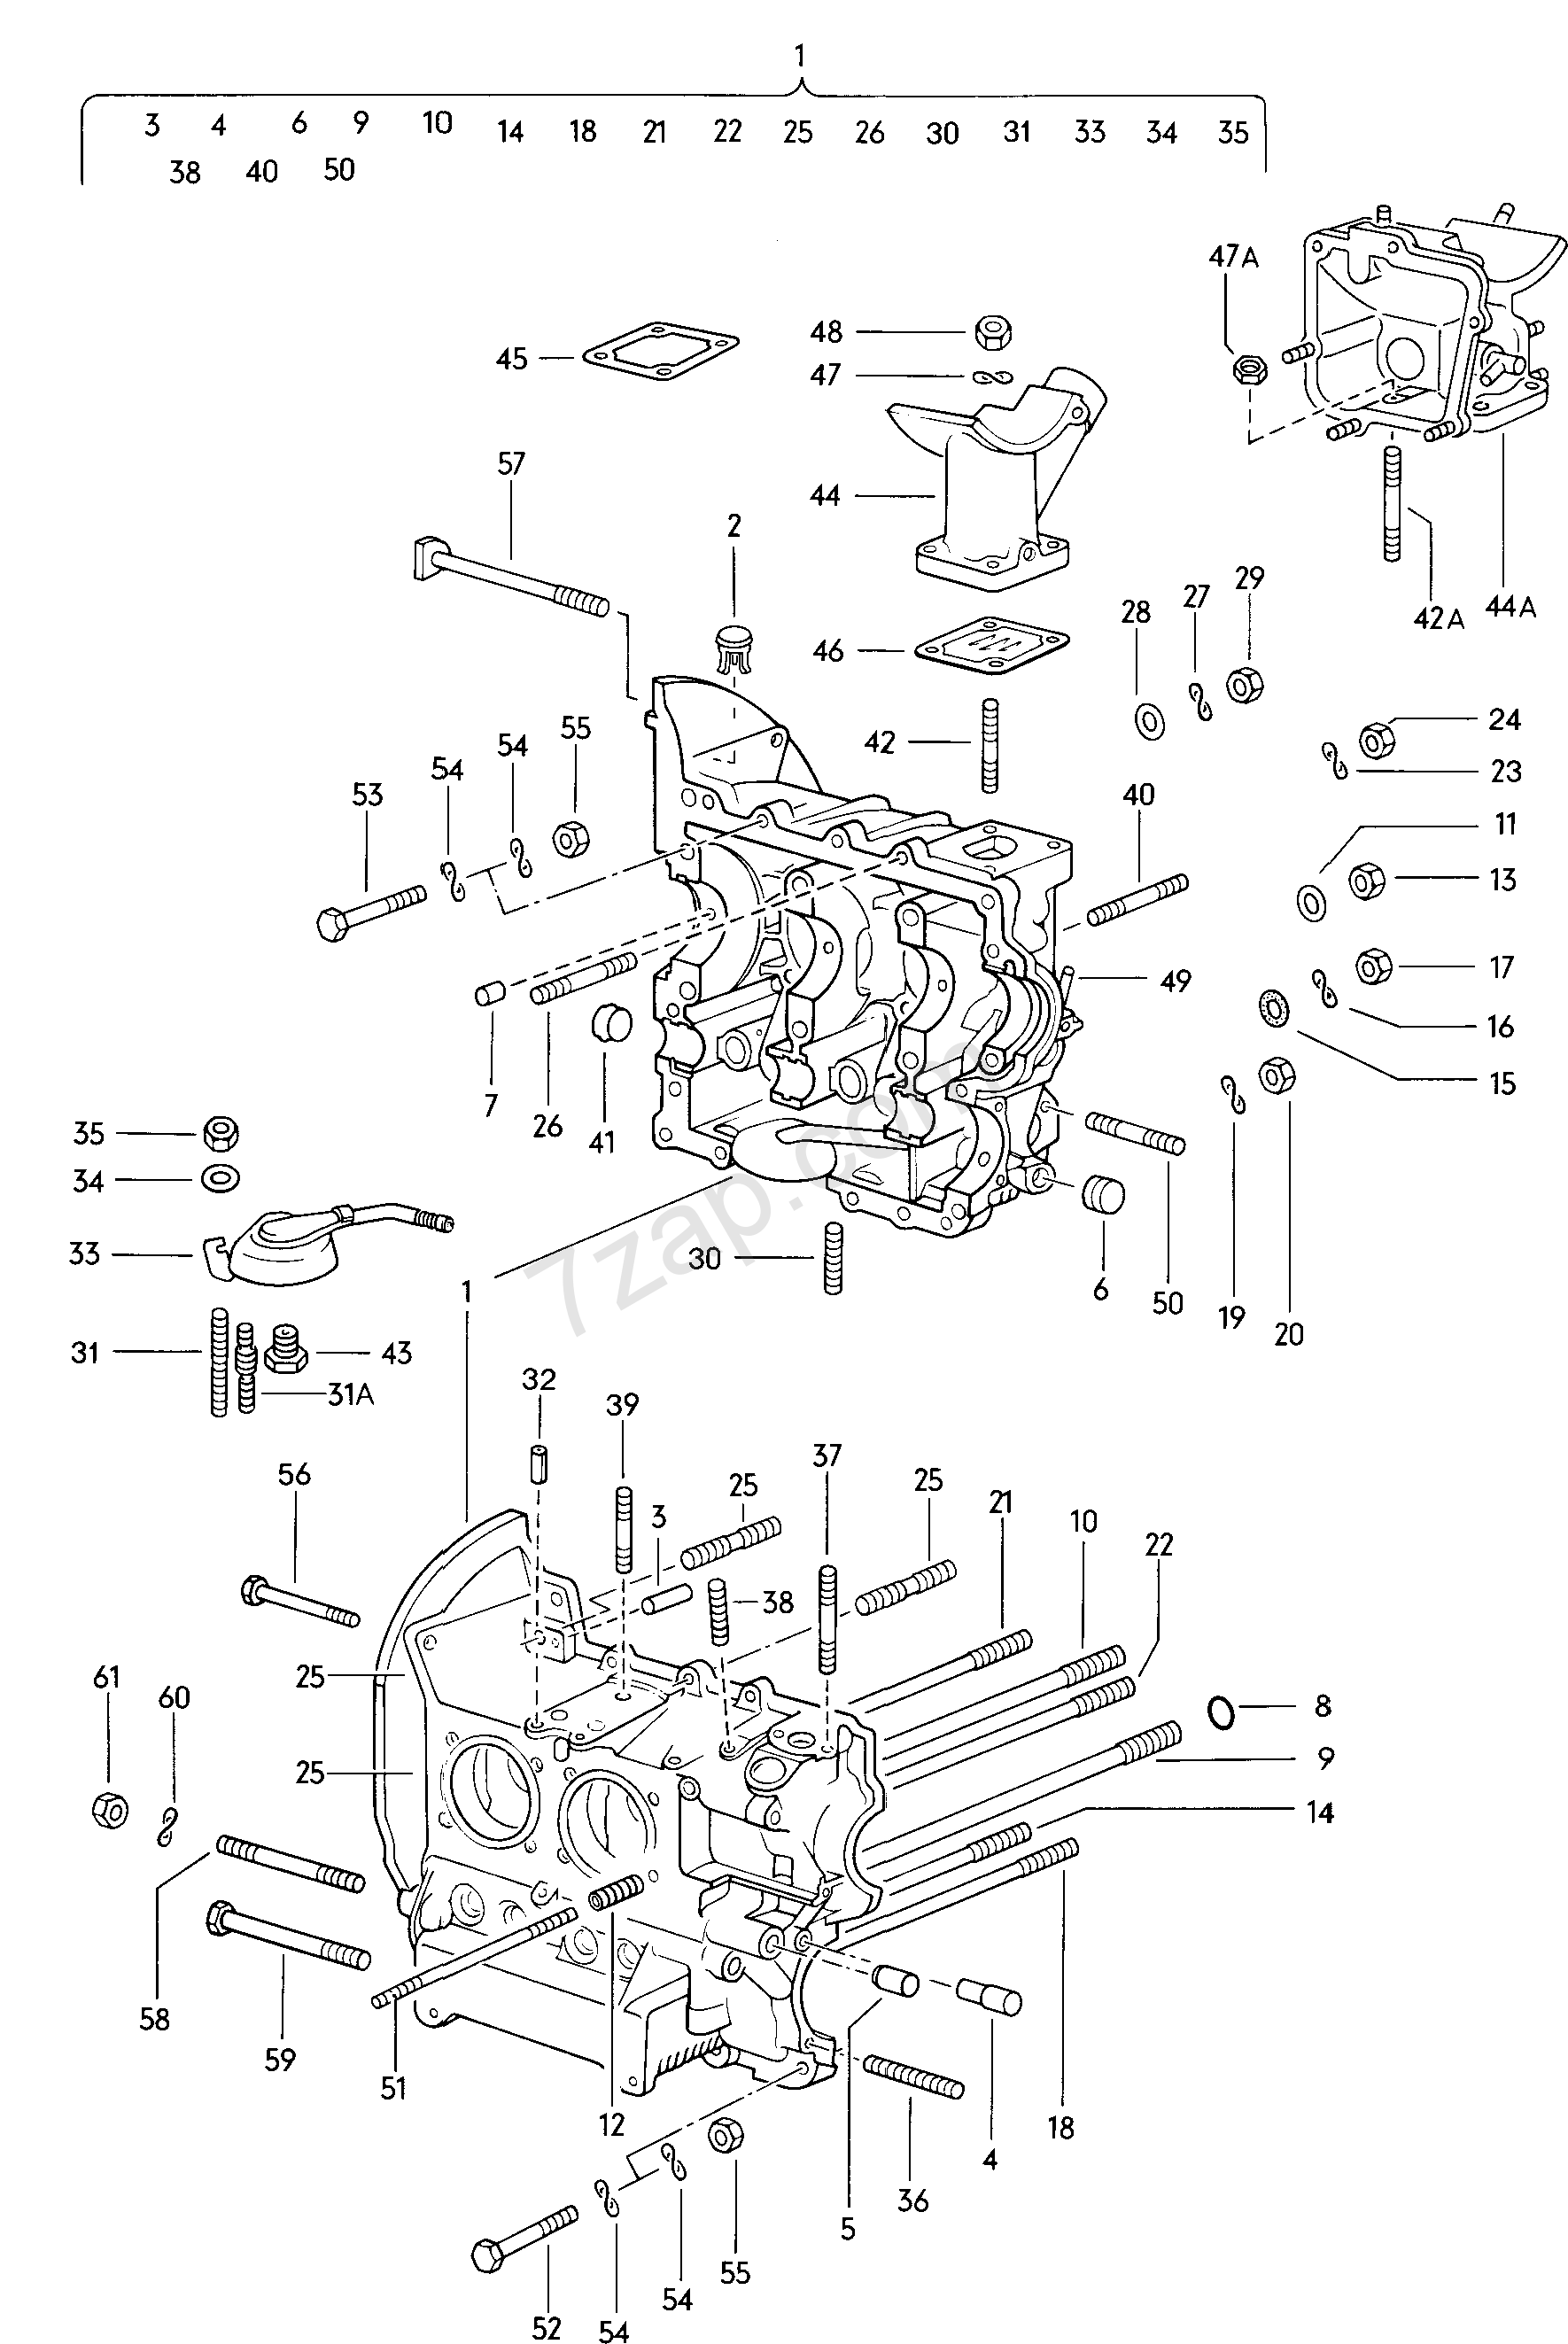 mounting parts for engine and transmission VW 1200/1300